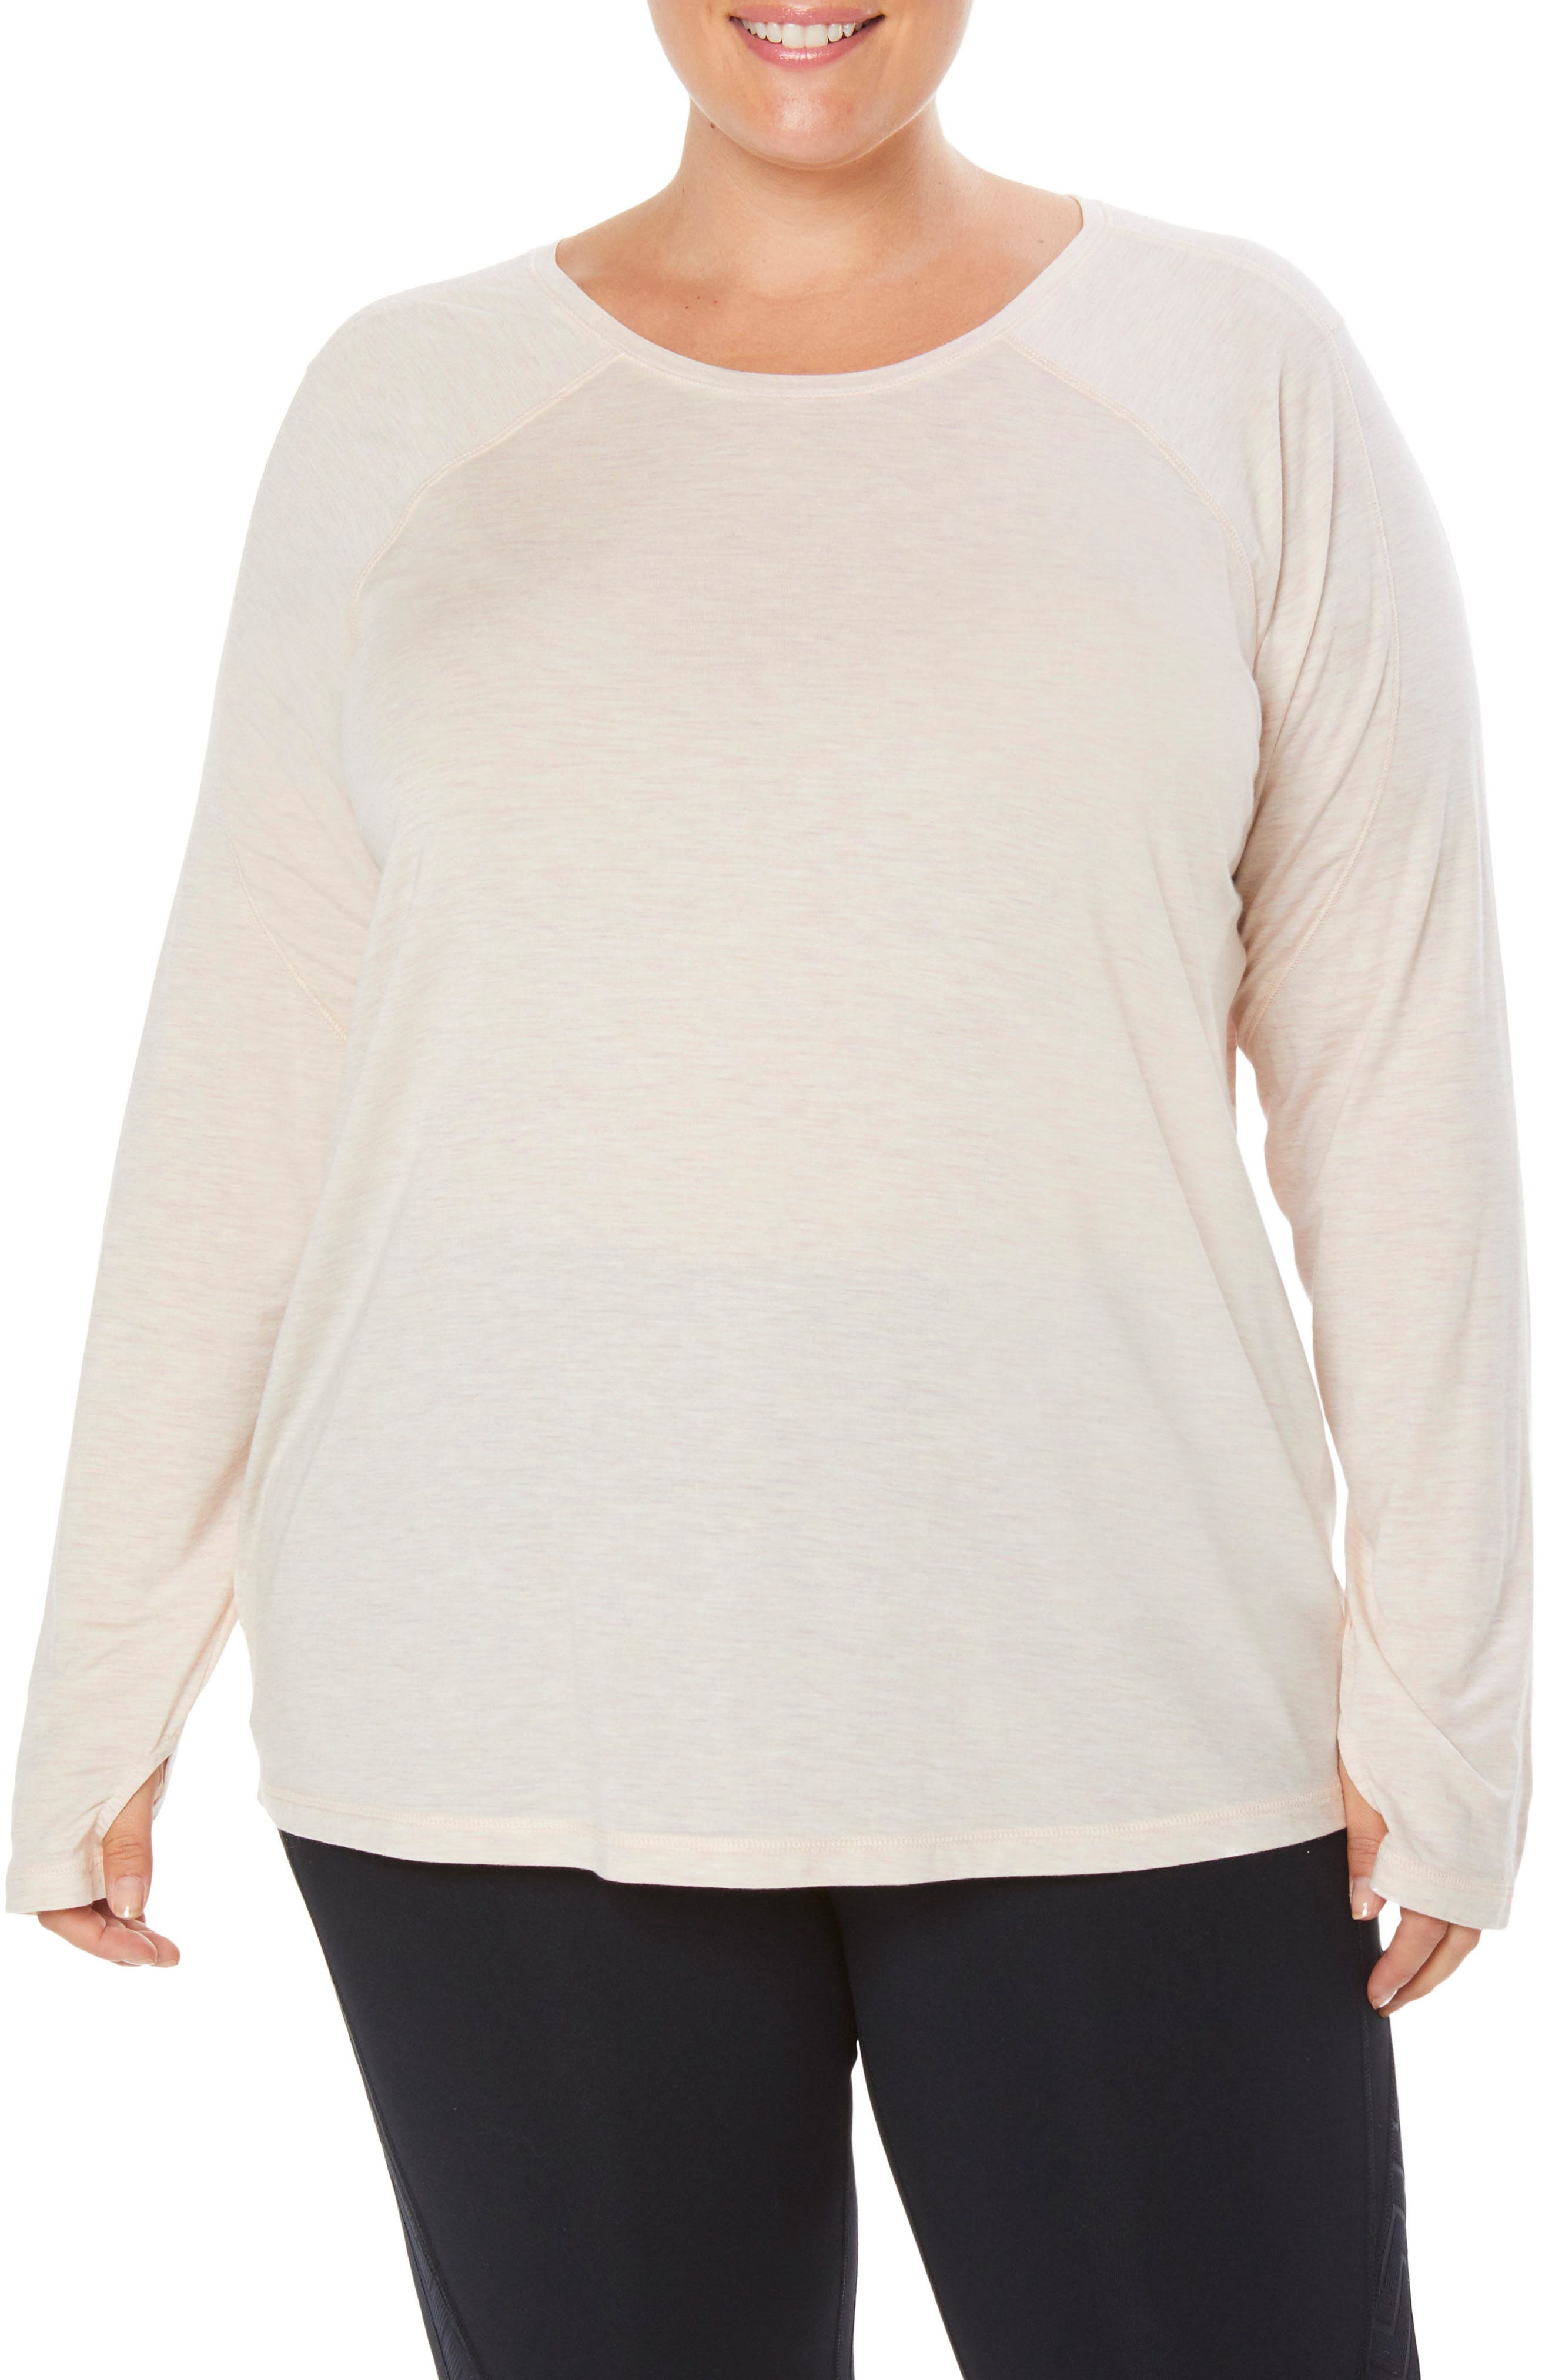 Shape Performance Tee,                         Main,                         color, 650